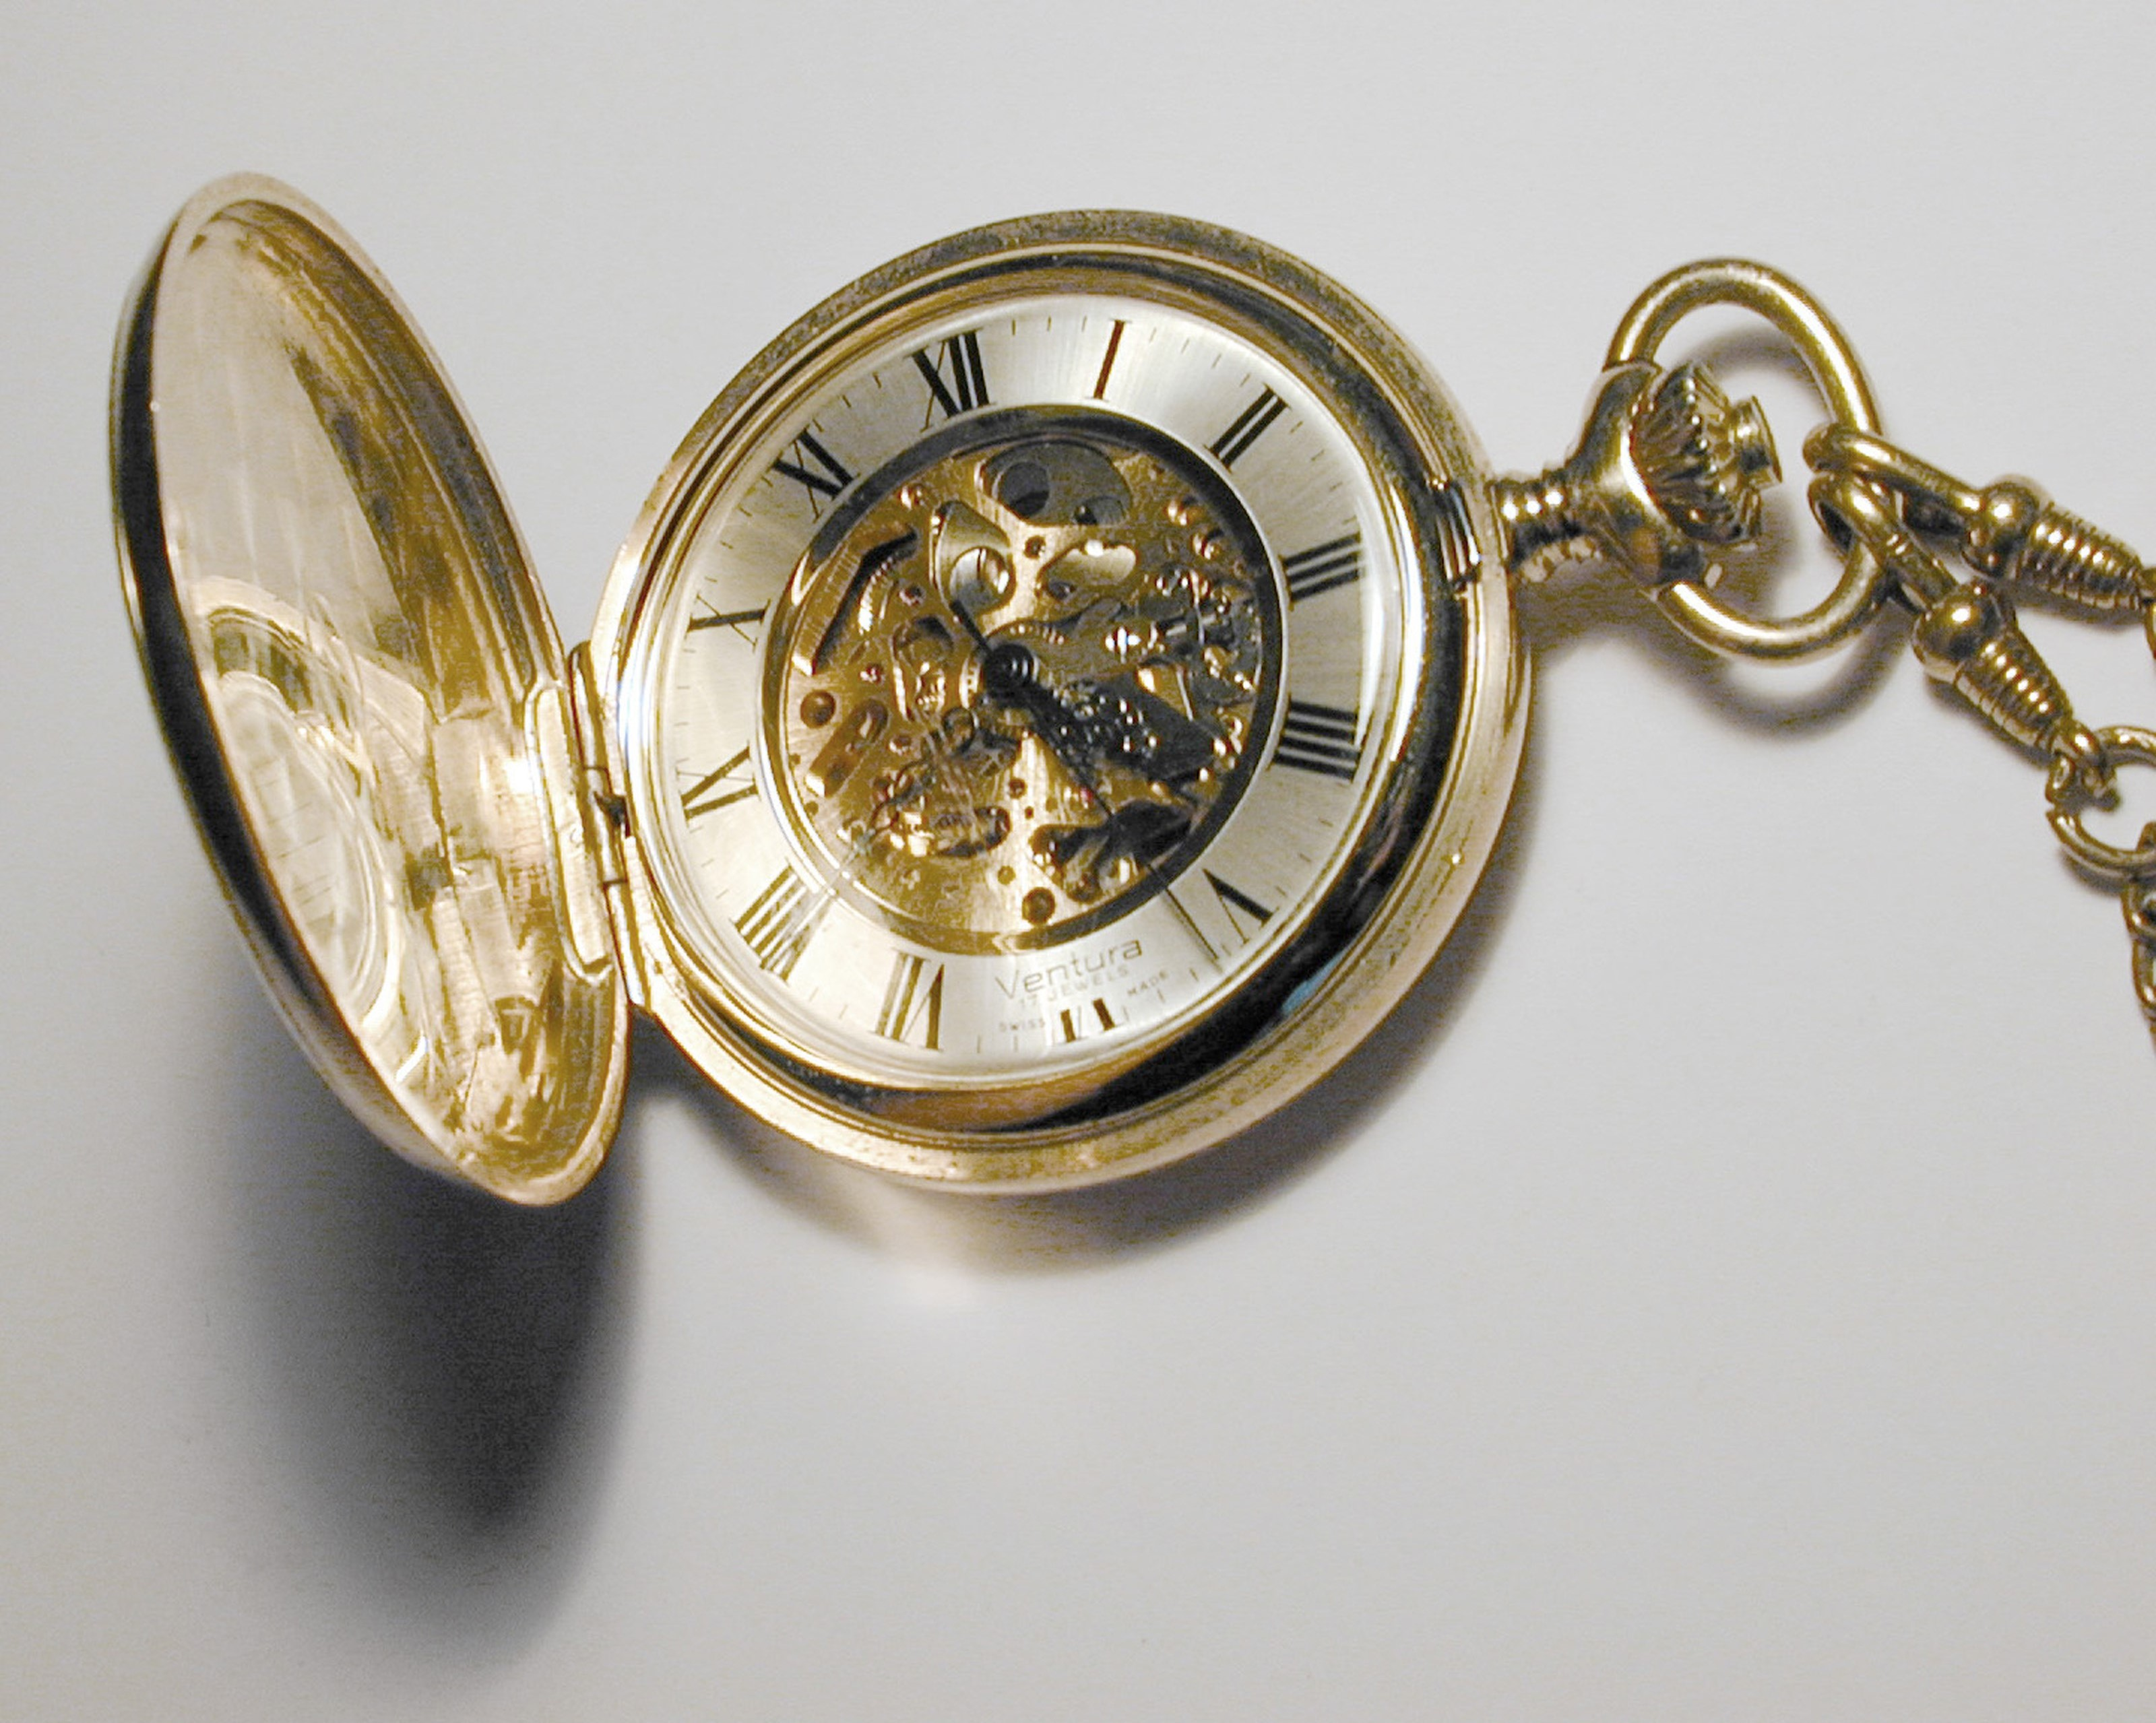 http://www.freeimageslive.com/galleries/objects/watch/pics/pocketwatch0876.jpg